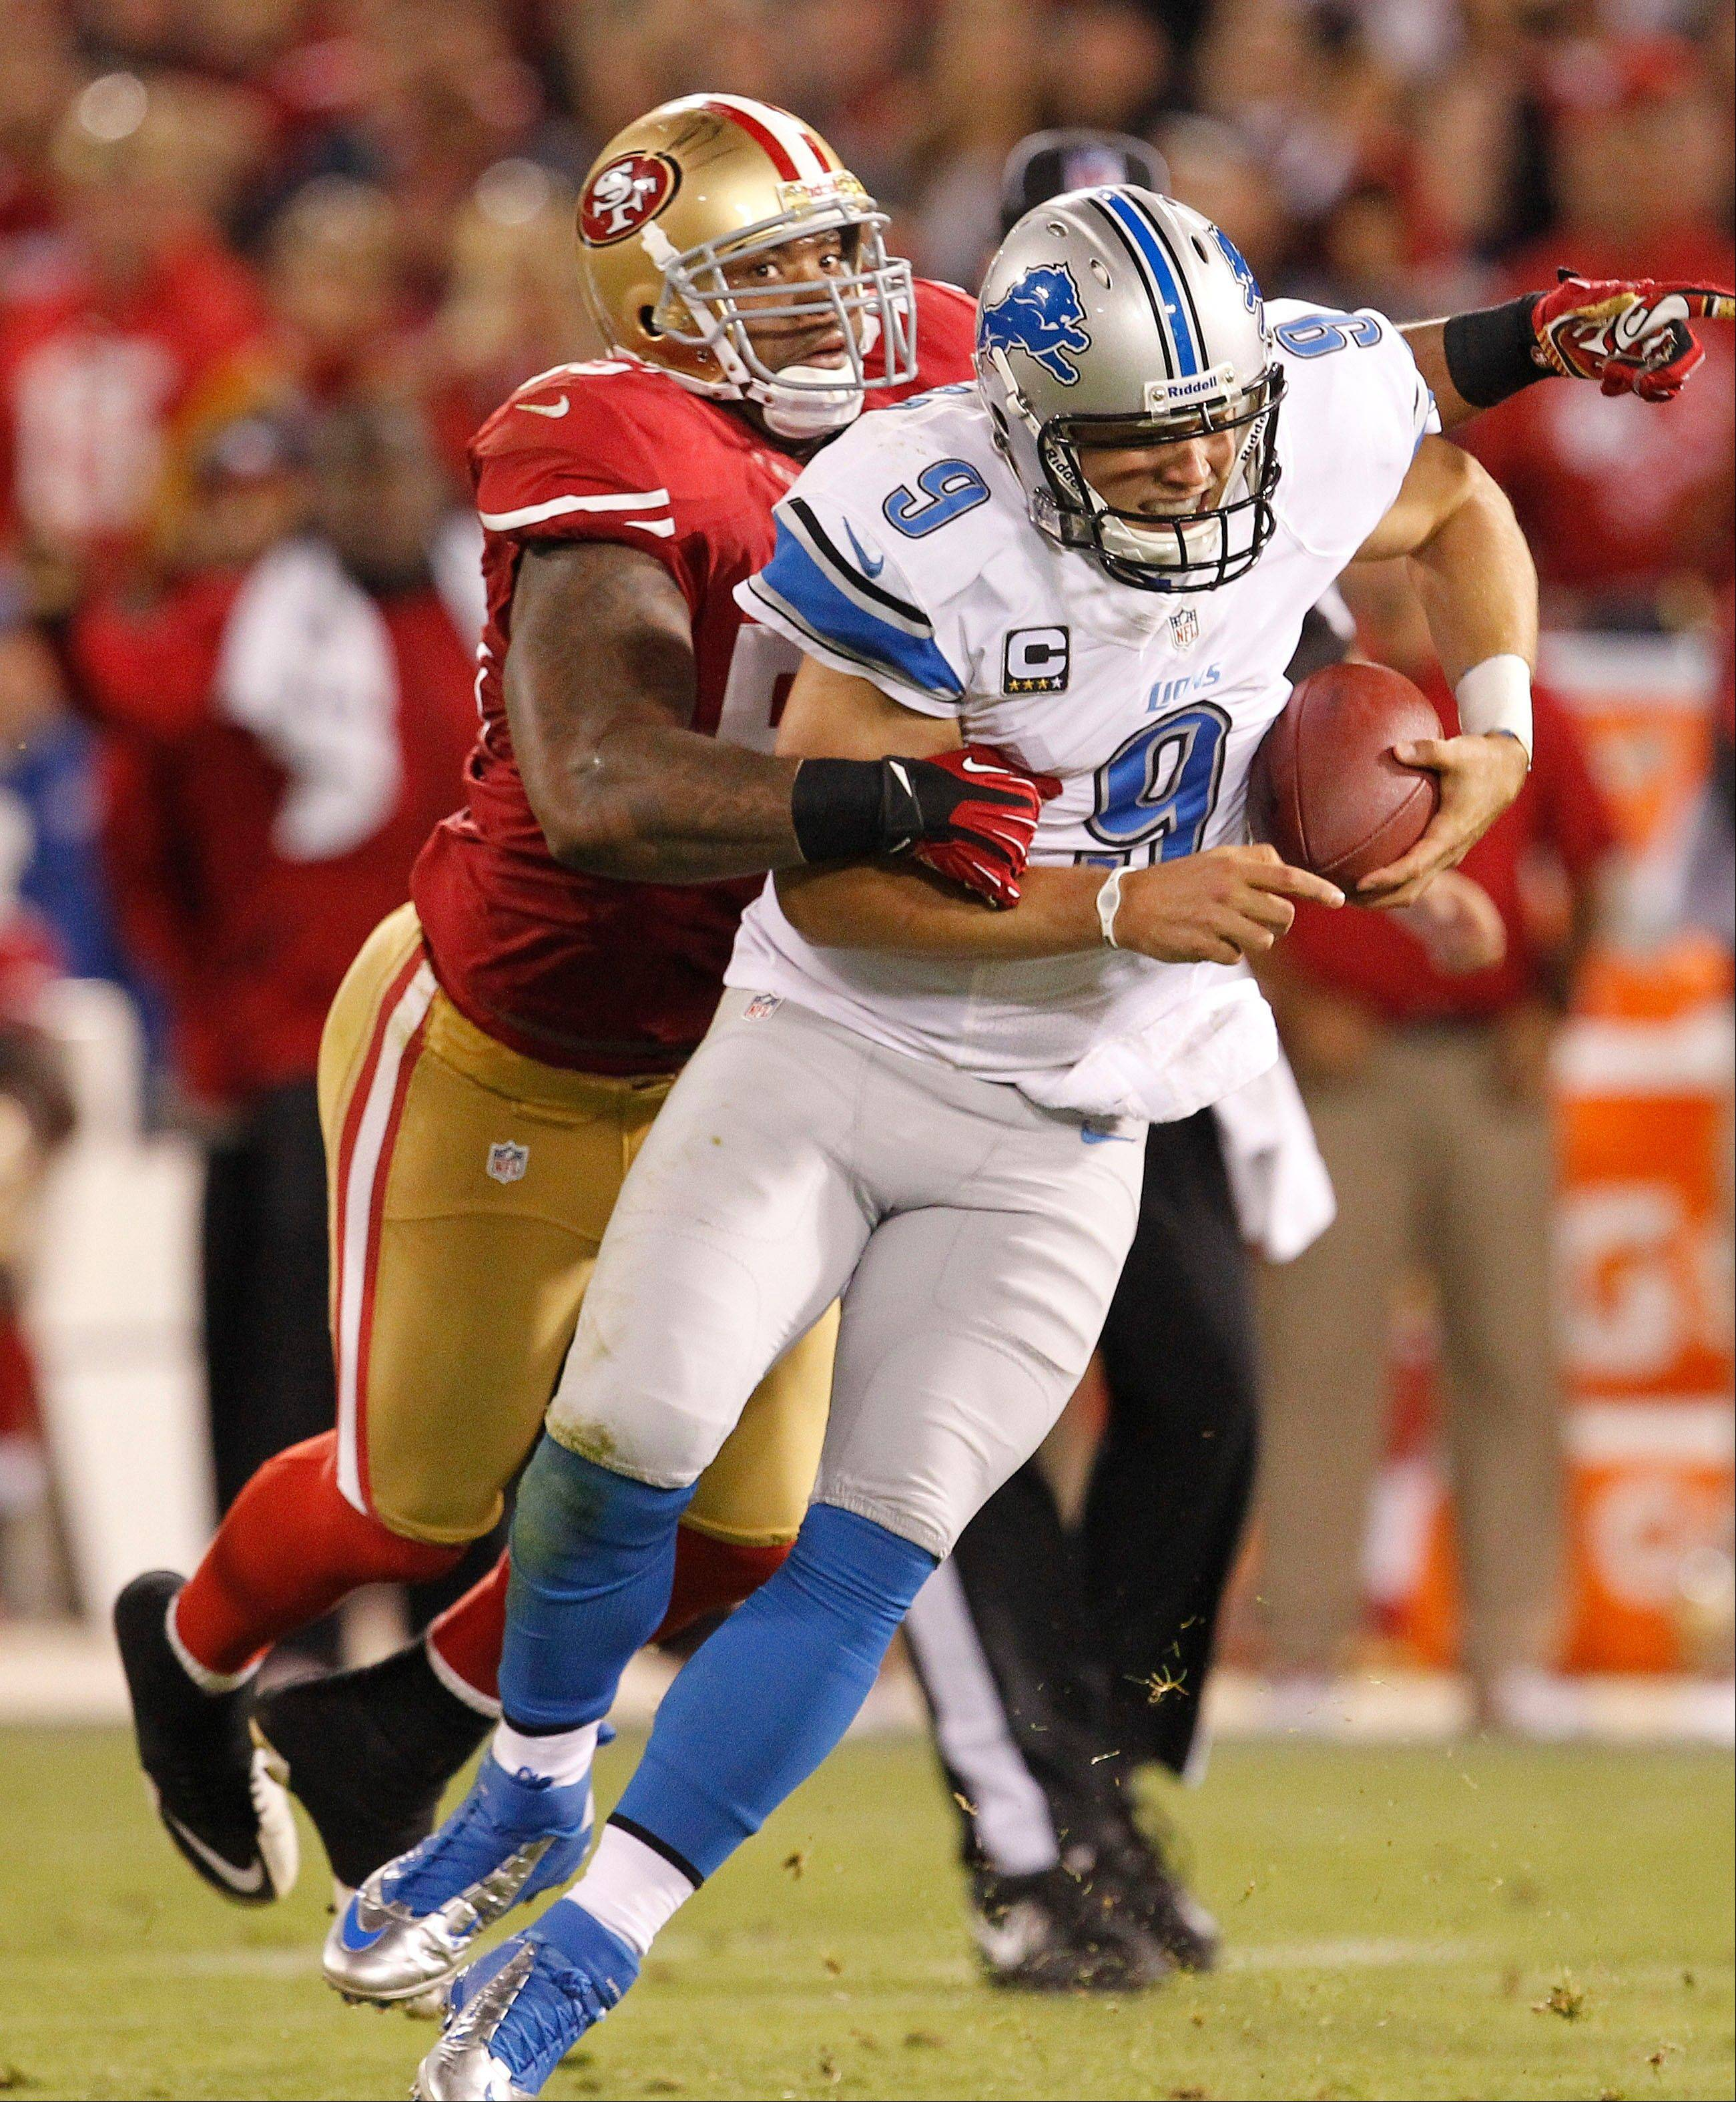 Detroit Lions quarterback Matthew Stafford, right, is brought down by San Francisco 49ers outside linebacker Ahmad Brooks, left, Sunday during the fourth quarter. The 49ers have one of the top defenses in the league and you should think twice about starting running backs when they face them.